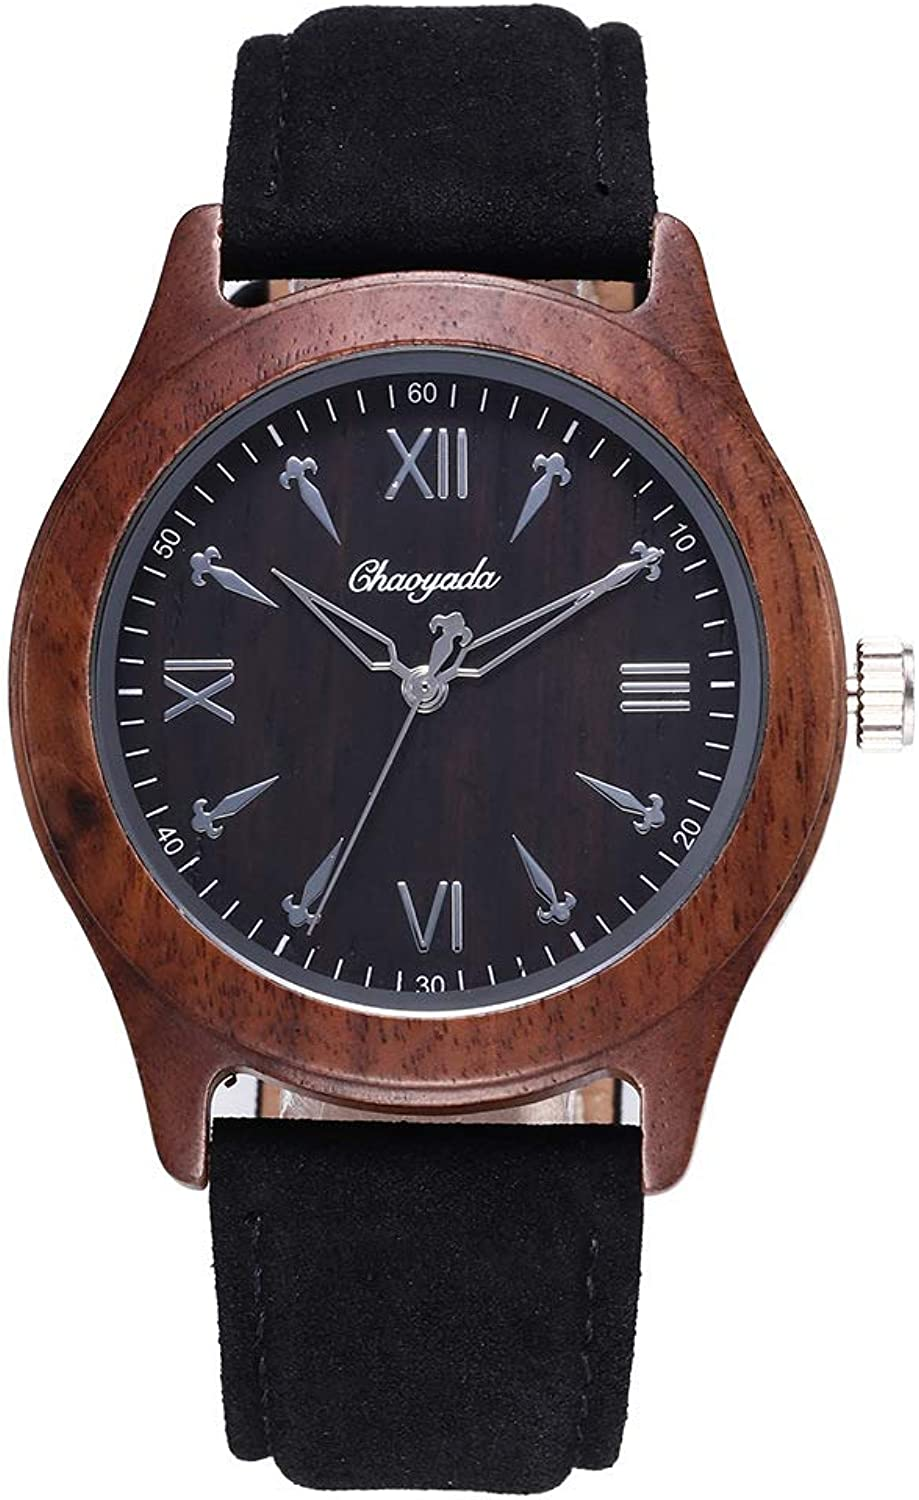 Men's Watch Sandalwood Watch Belt Ebony Men's Wooden Watch Wood Watch (color   3)